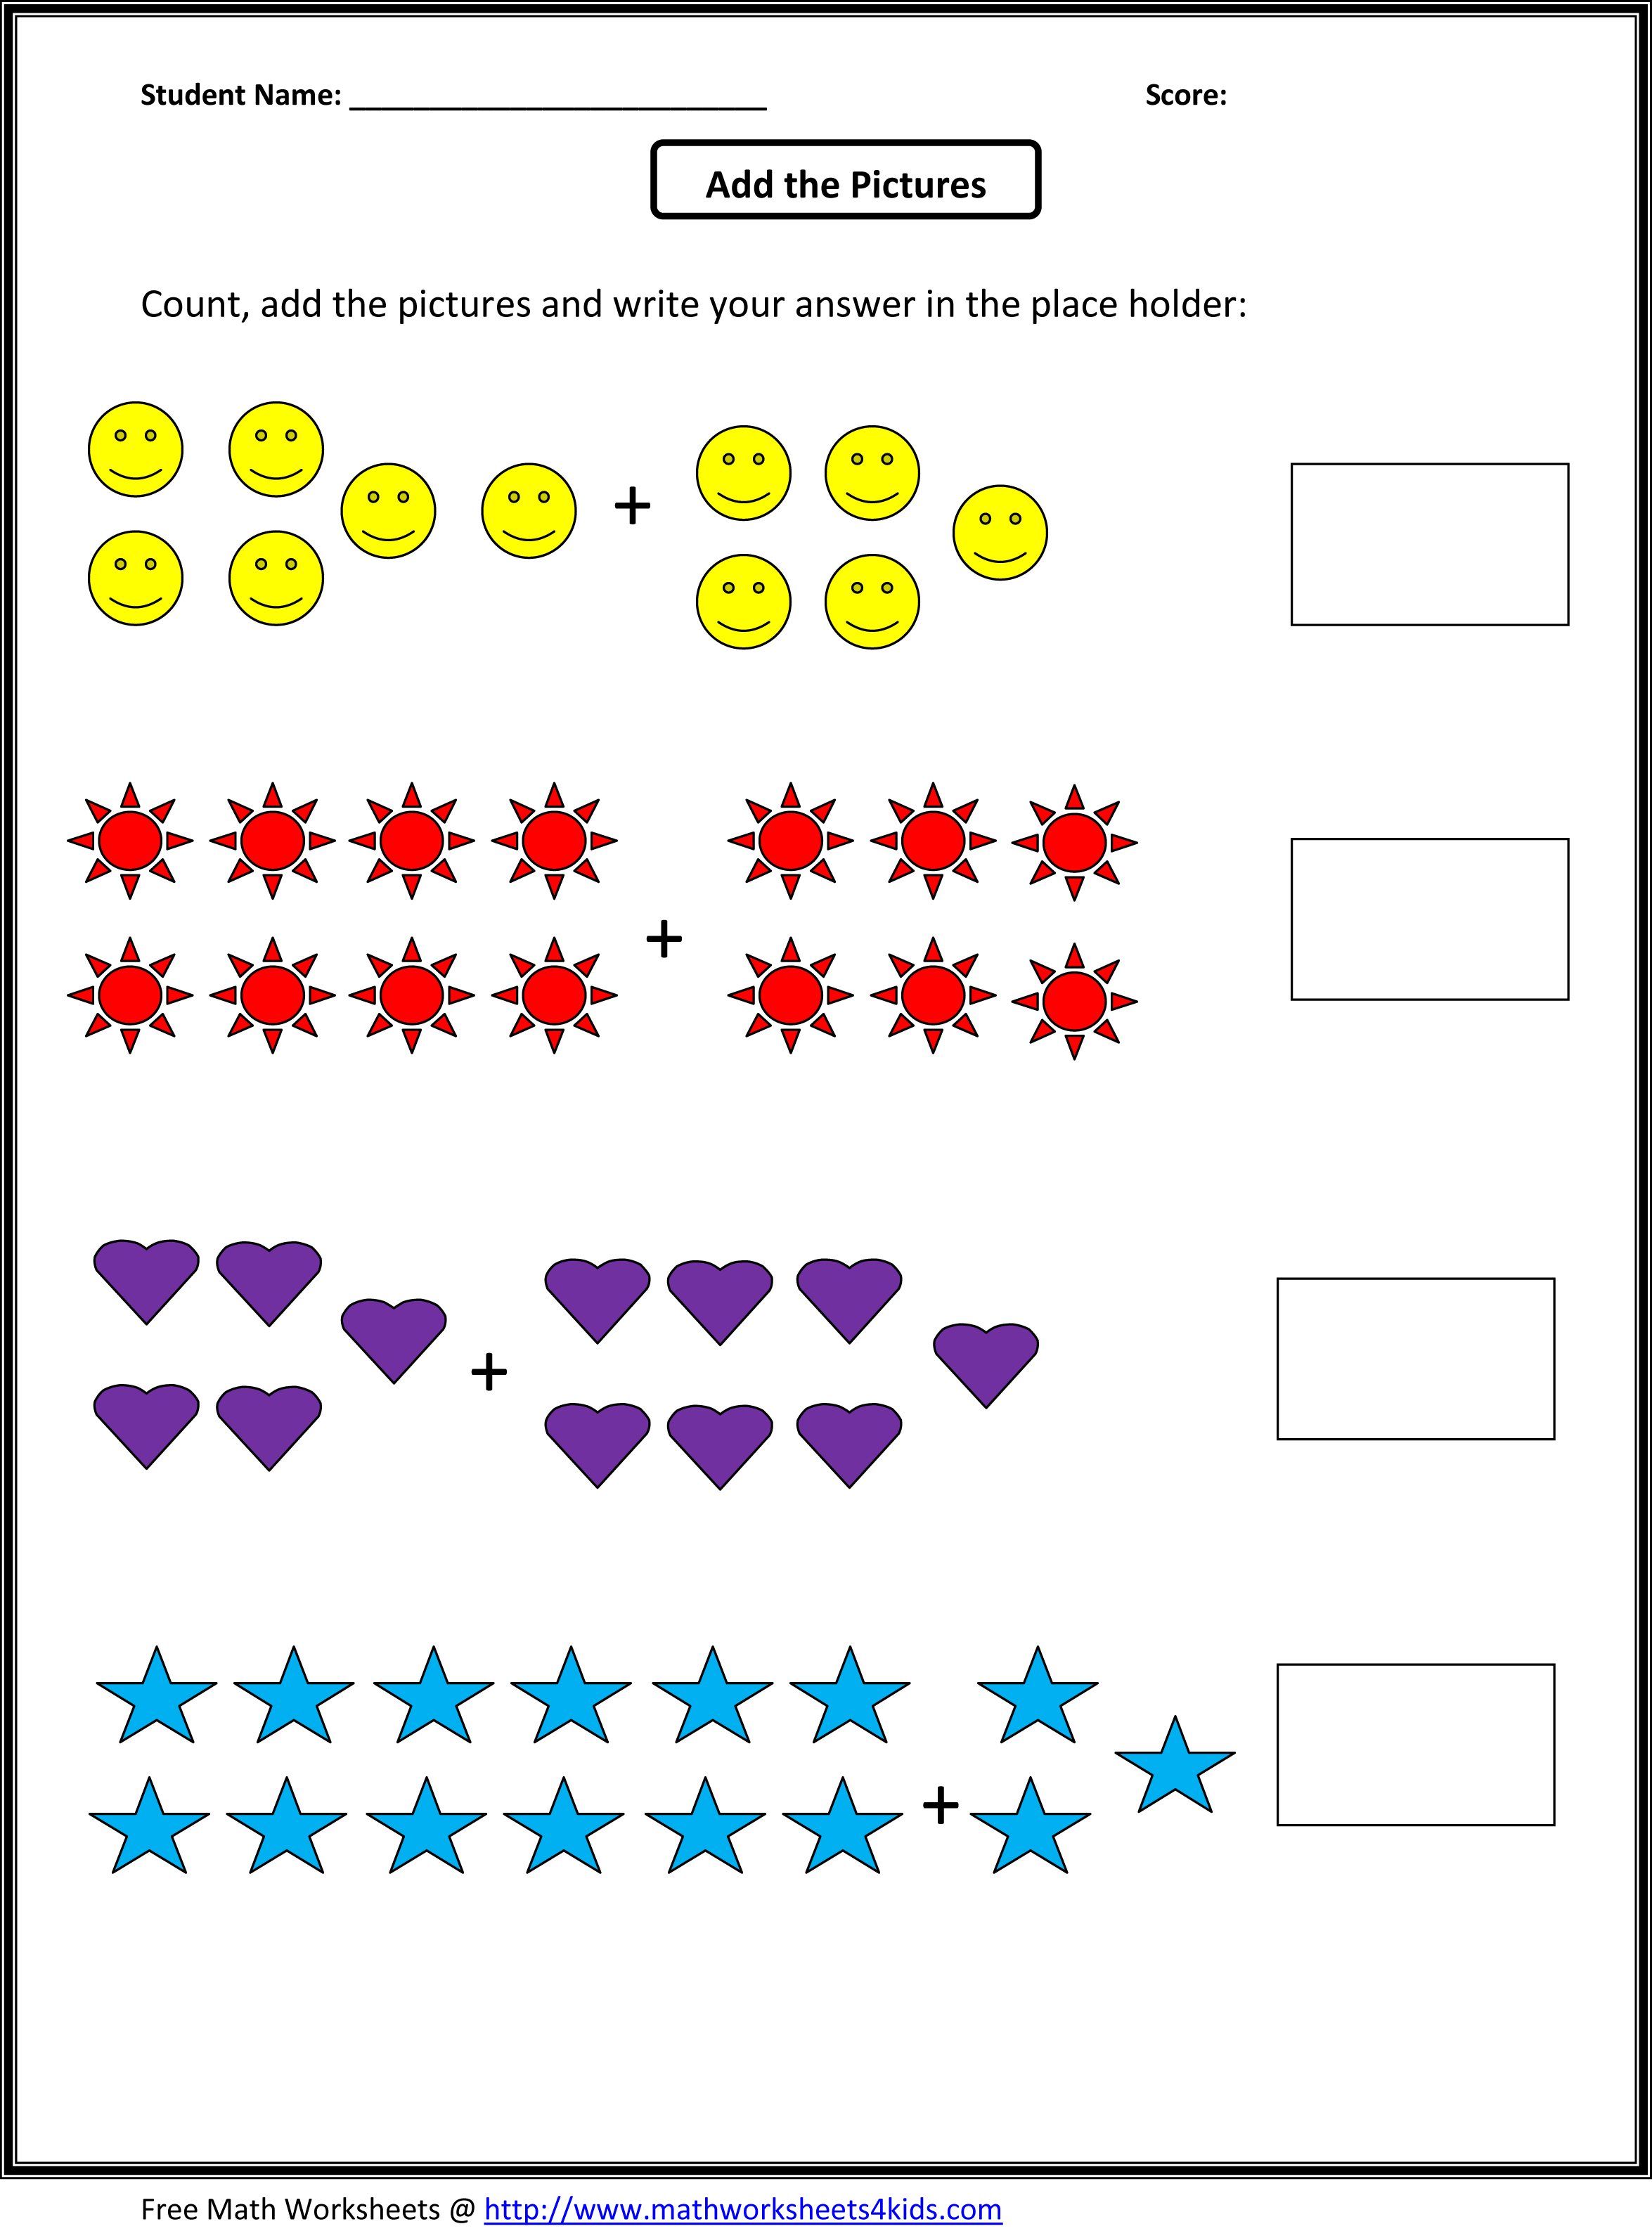 Weirdmailus  Nice Grade  Maths Worksheet  Reocurent With Licious Math Worksheets For St Grade Free  Reocurent With Astonishing Worksheet Biology Also Opposite Adjacent Hypotenuse Worksheet In Addition Pumpkin Life Cycle Worksheet And Protons Neutrons Electrons Practice Worksheet As Well As Free Worksheet For Kindergarten In Math Additionally Distance And Displacement Worksheet With Answers From Reocurentcom With Weirdmailus  Licious Grade  Maths Worksheet  Reocurent With Astonishing Math Worksheets For St Grade Free  Reocurent And Nice Worksheet Biology Also Opposite Adjacent Hypotenuse Worksheet In Addition Pumpkin Life Cycle Worksheet From Reocurentcom